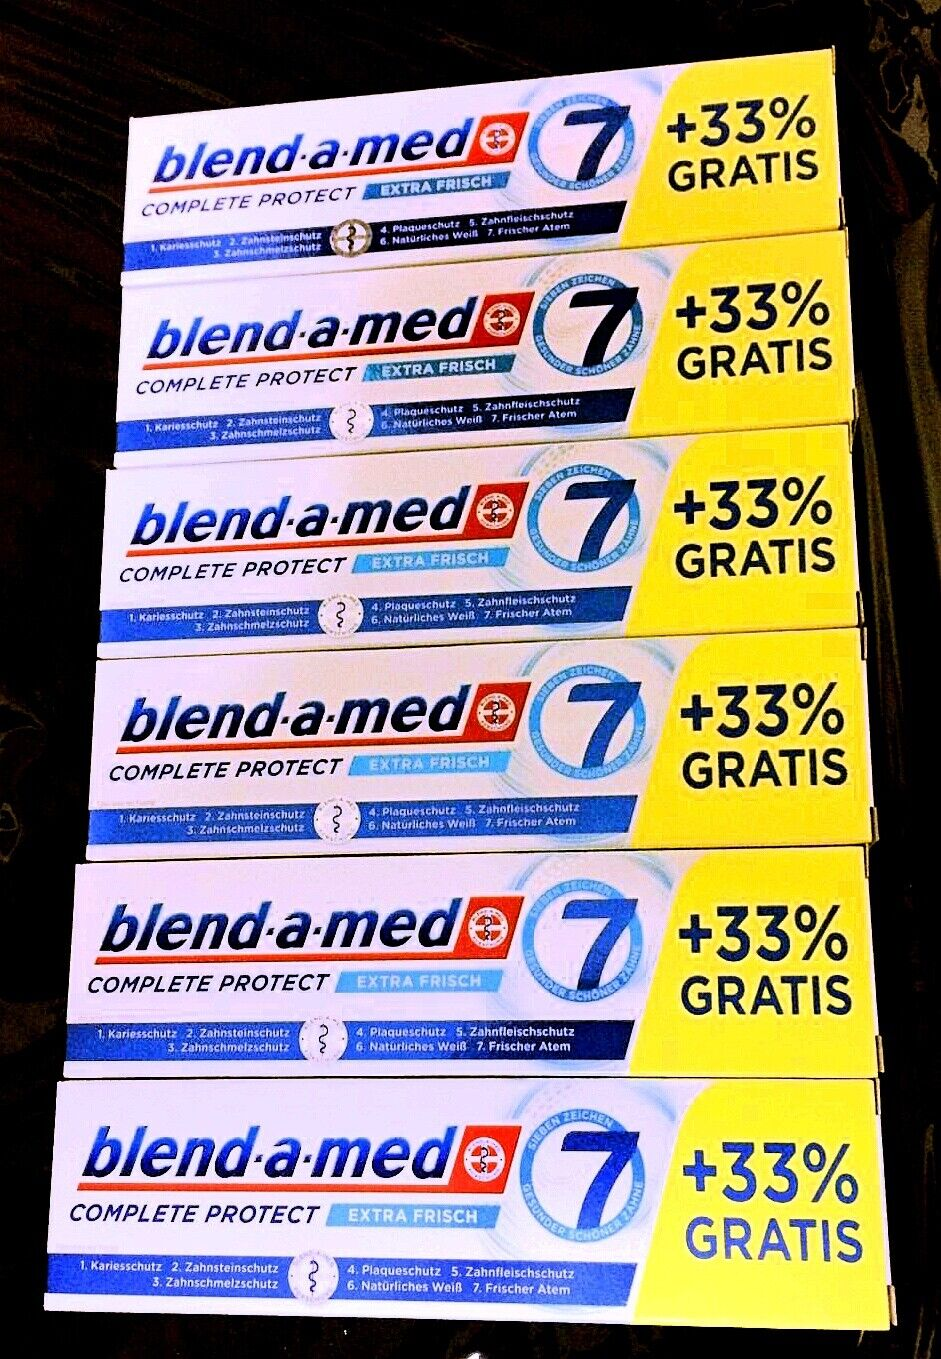 6x blend-a-med Complete Protect 7 Extra Frisch Zahncreme , 6x100ml